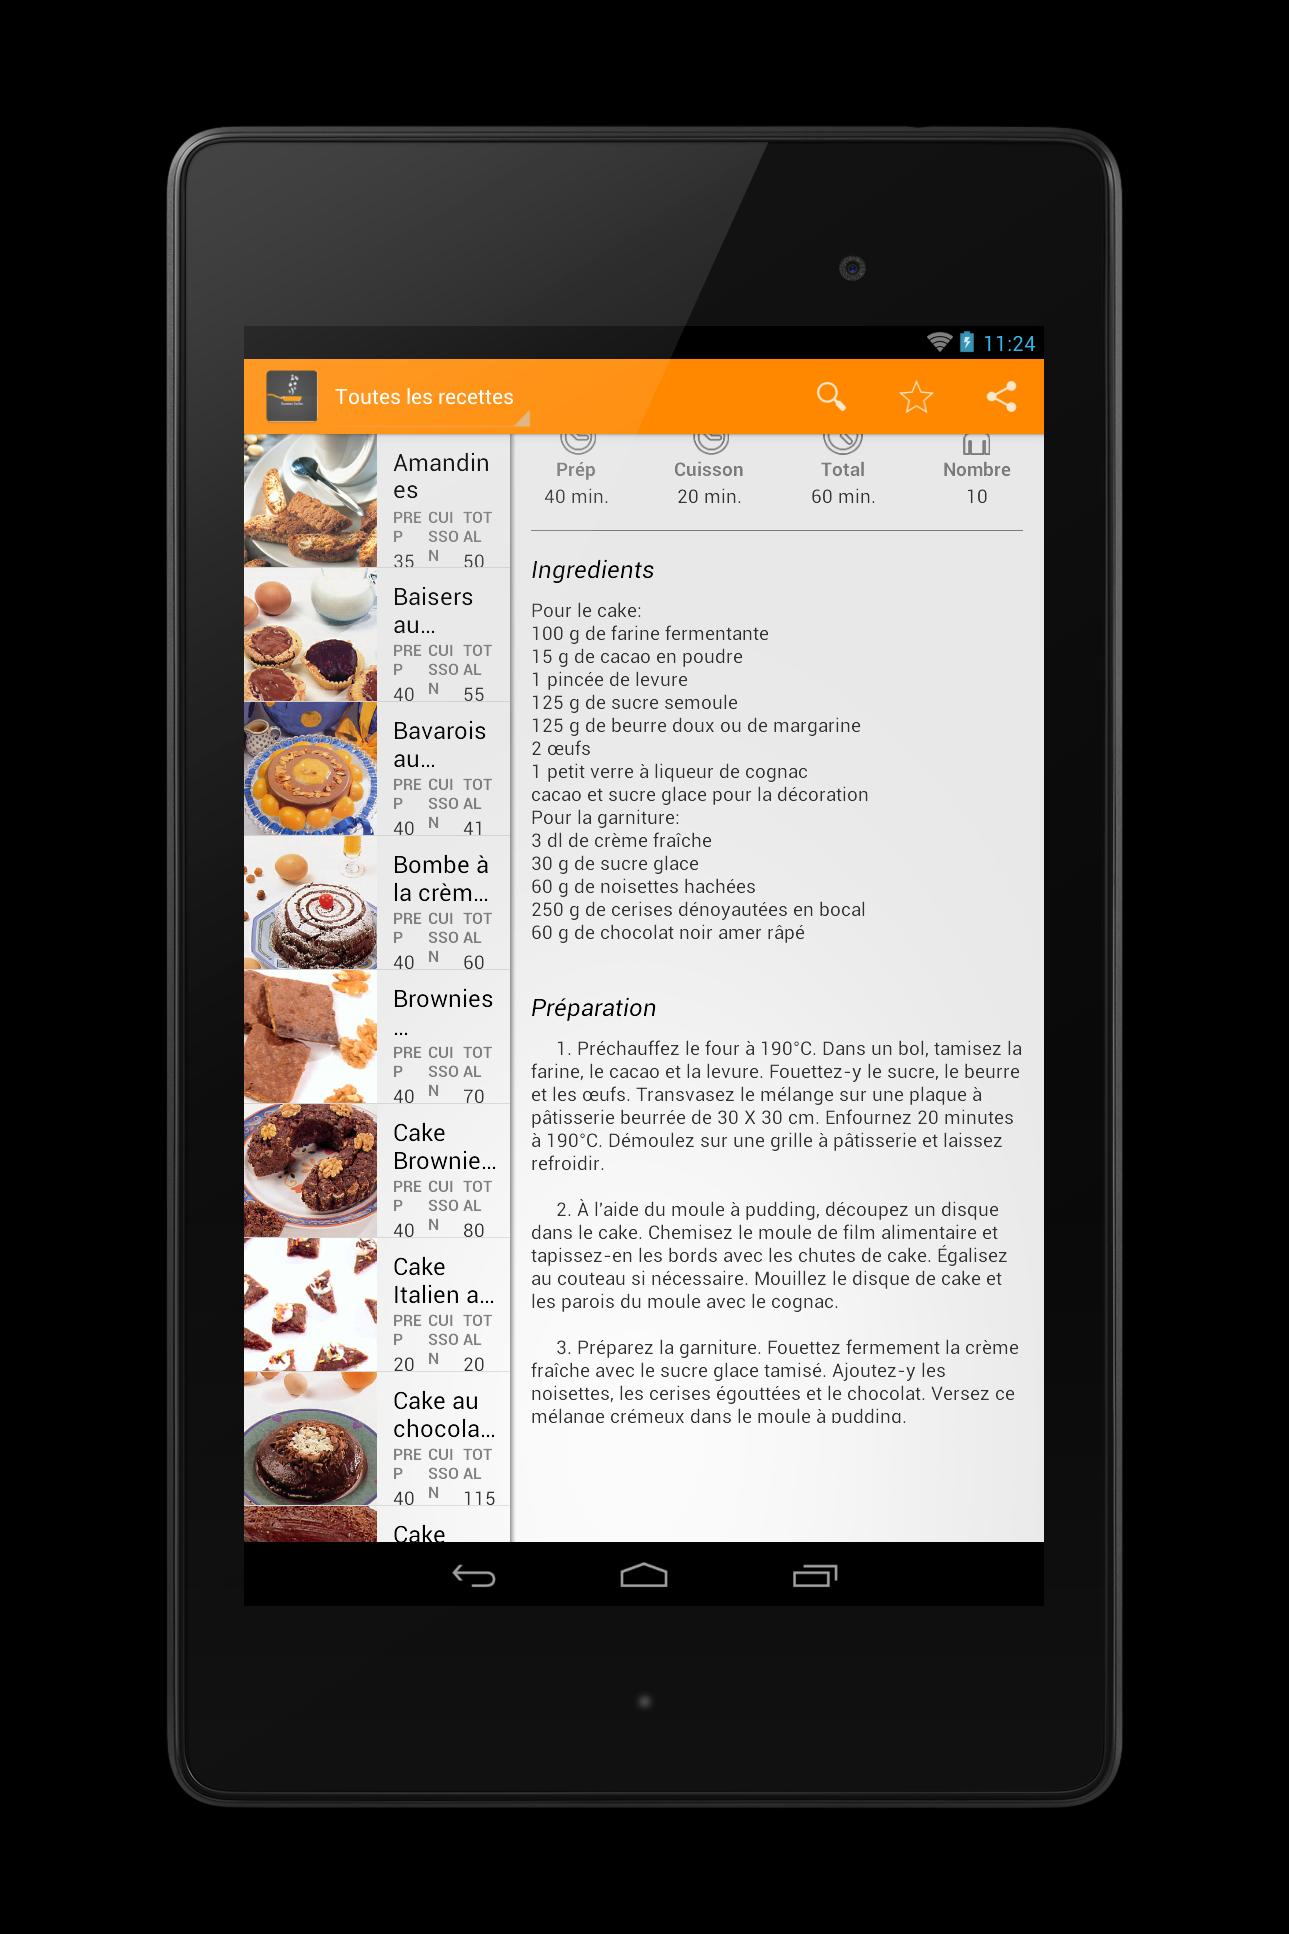 Cuisine Recettes Faciles For Android Apk Download